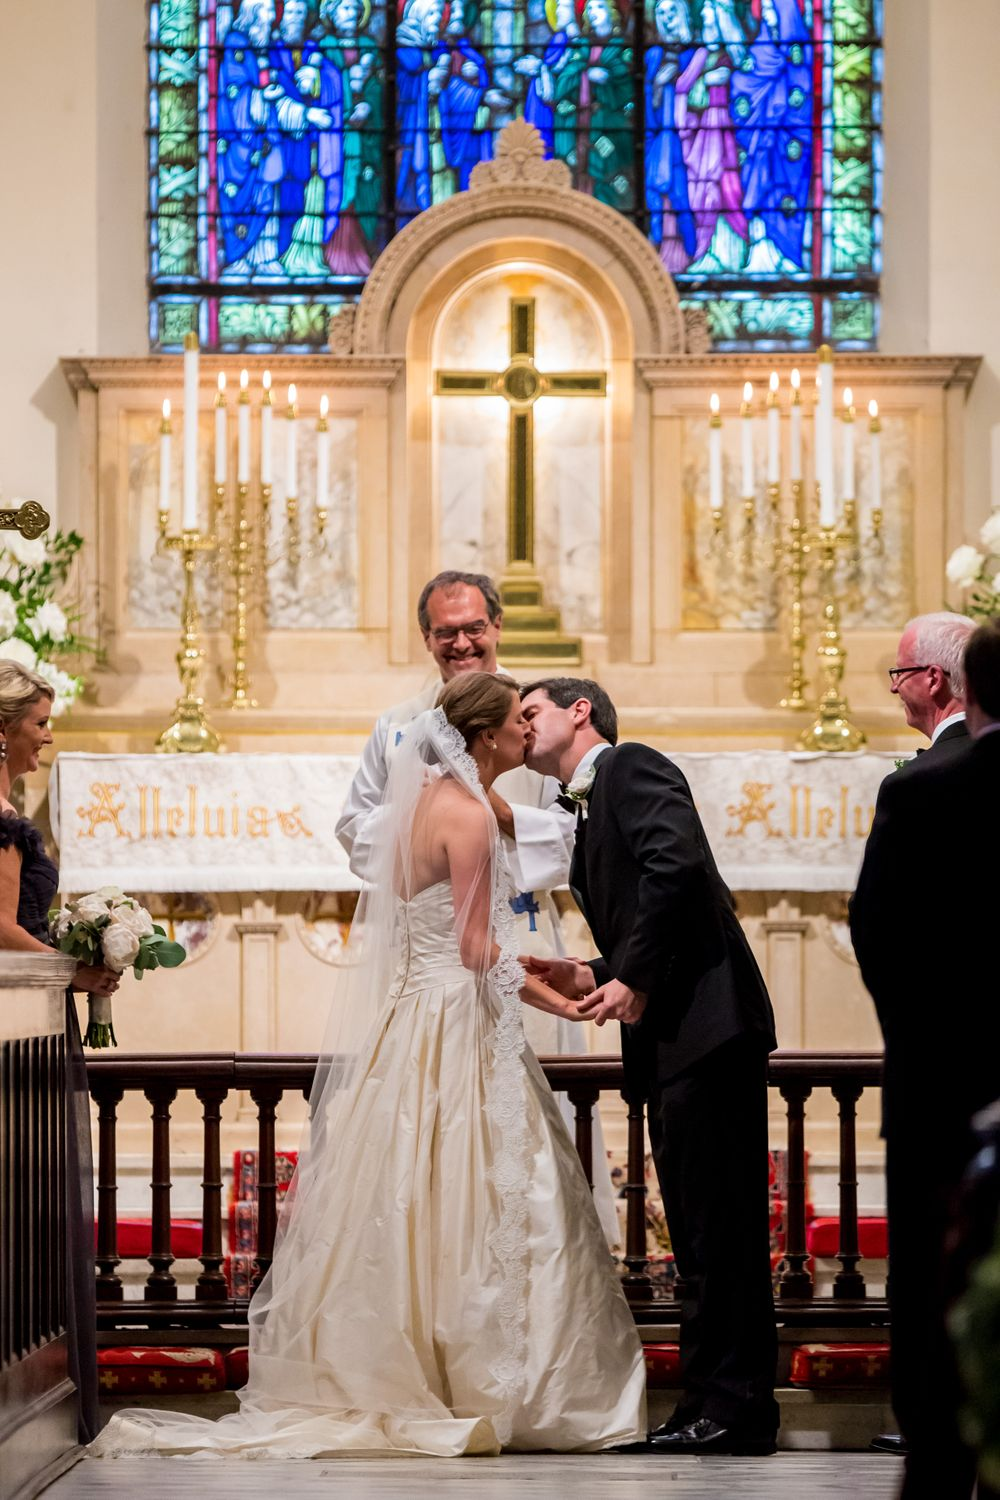 Ashley & Ben have their first kiss during their wedding at St. Philips Church in Charleston, SC